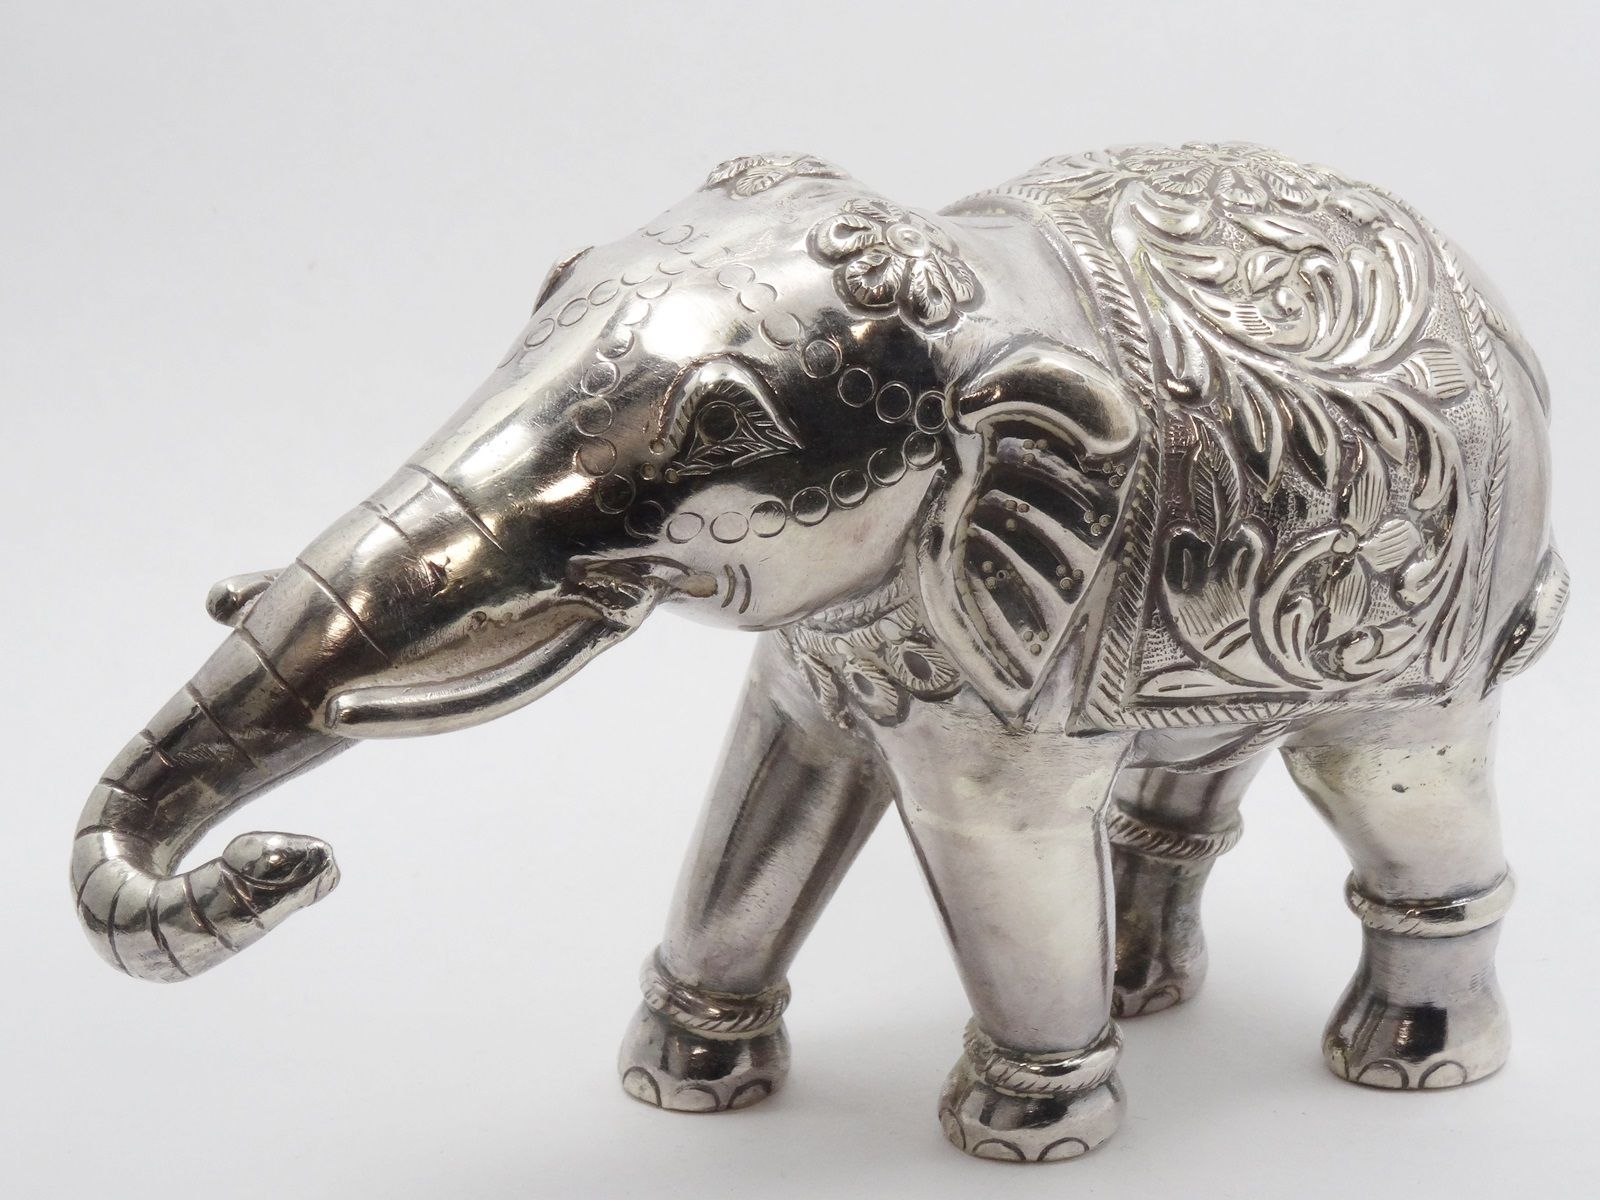 Miniature Sterling Silver Figurines